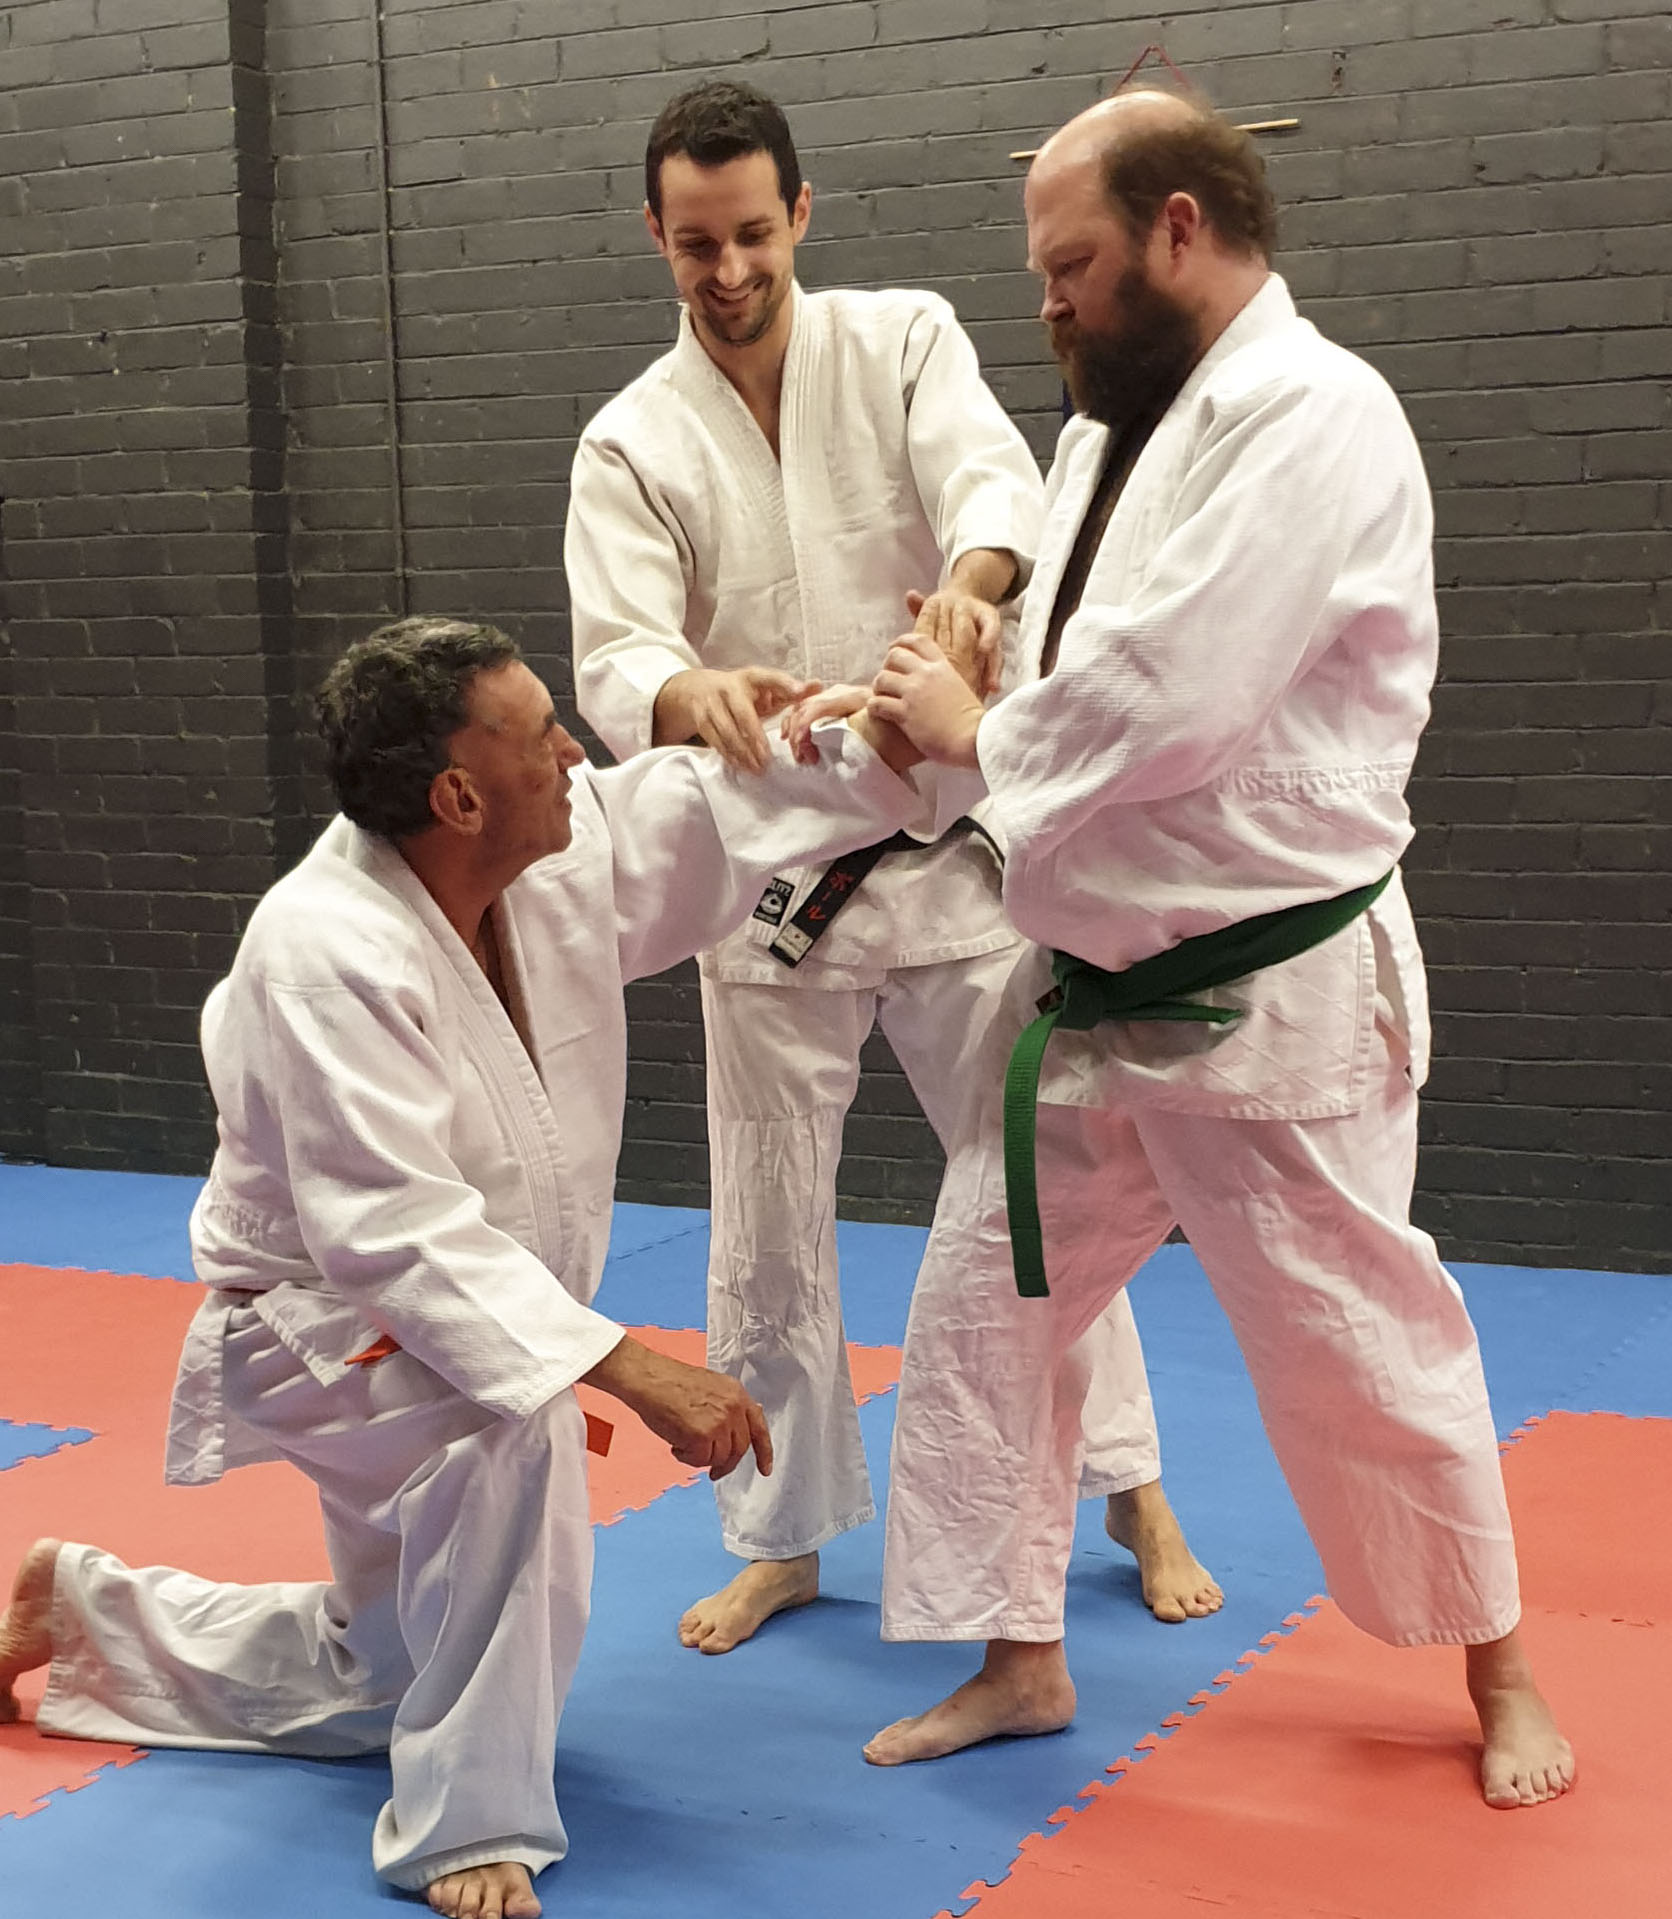 Sensei Paul teaching students wrist lock techniques